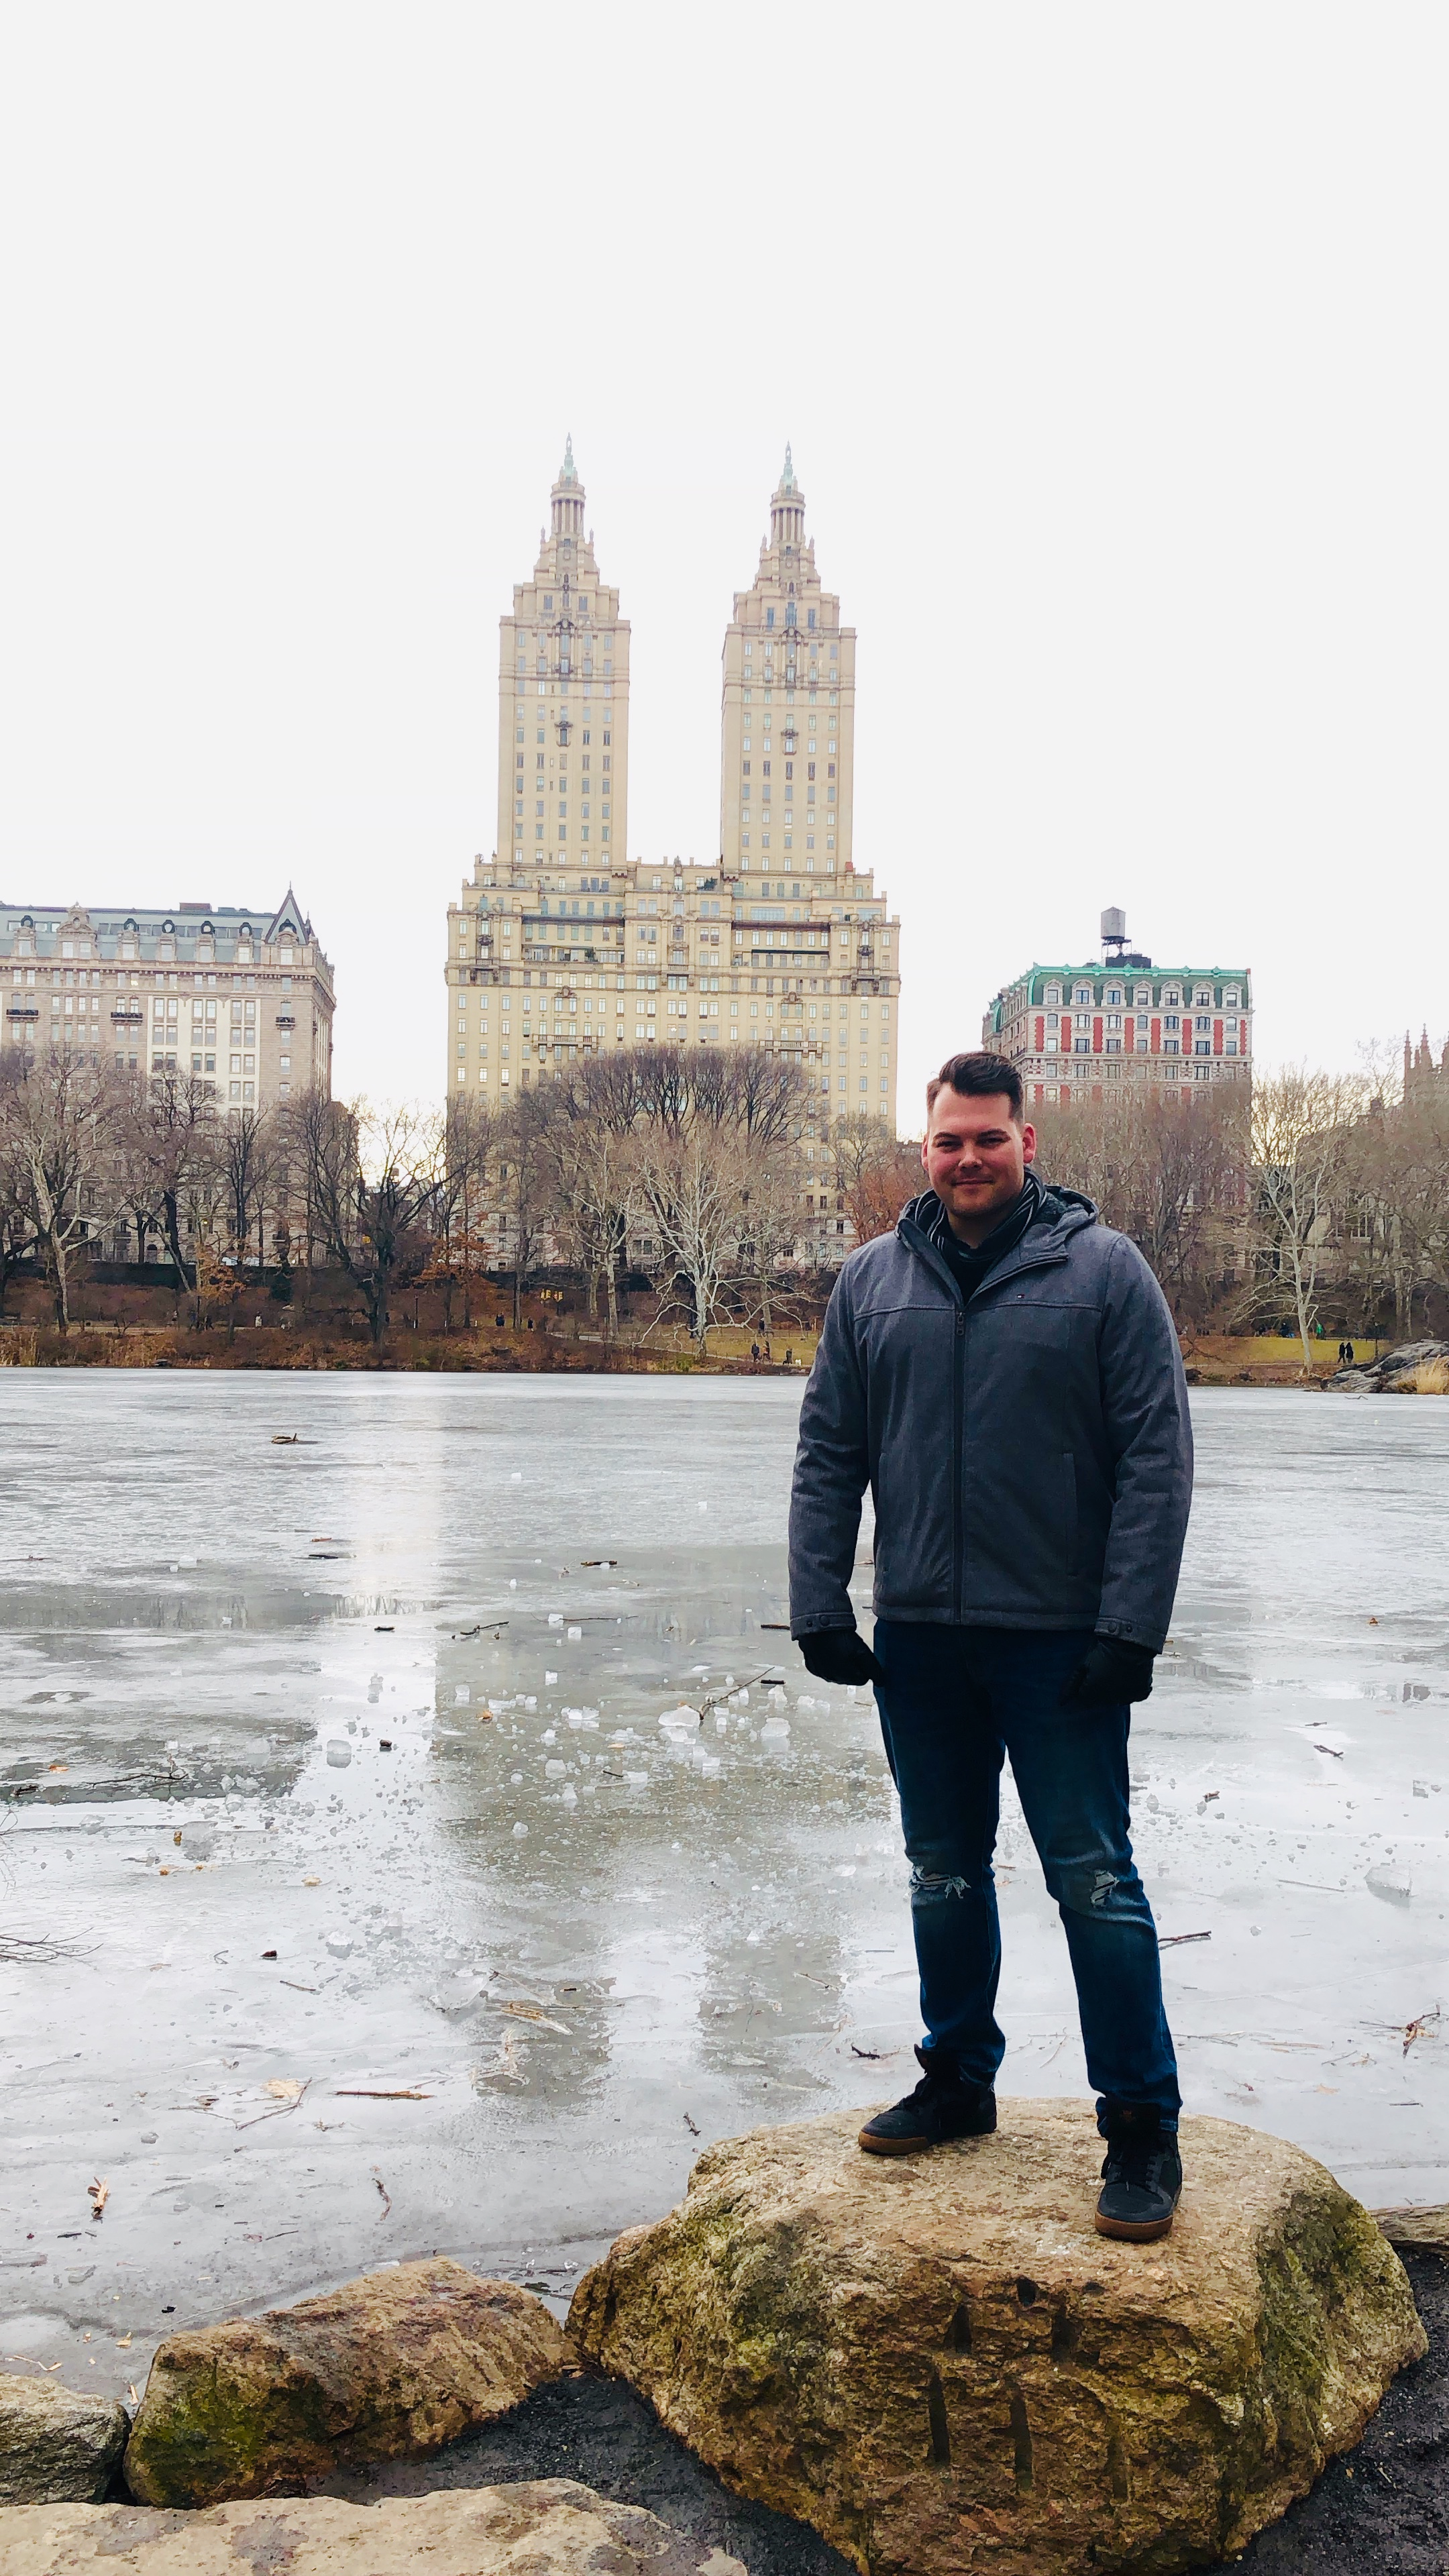 Frozen Lake @ Central Park. Living in San Diego, you don't see this. Ever. I'm also really curious what the engraving of the stone I'm standing on is.